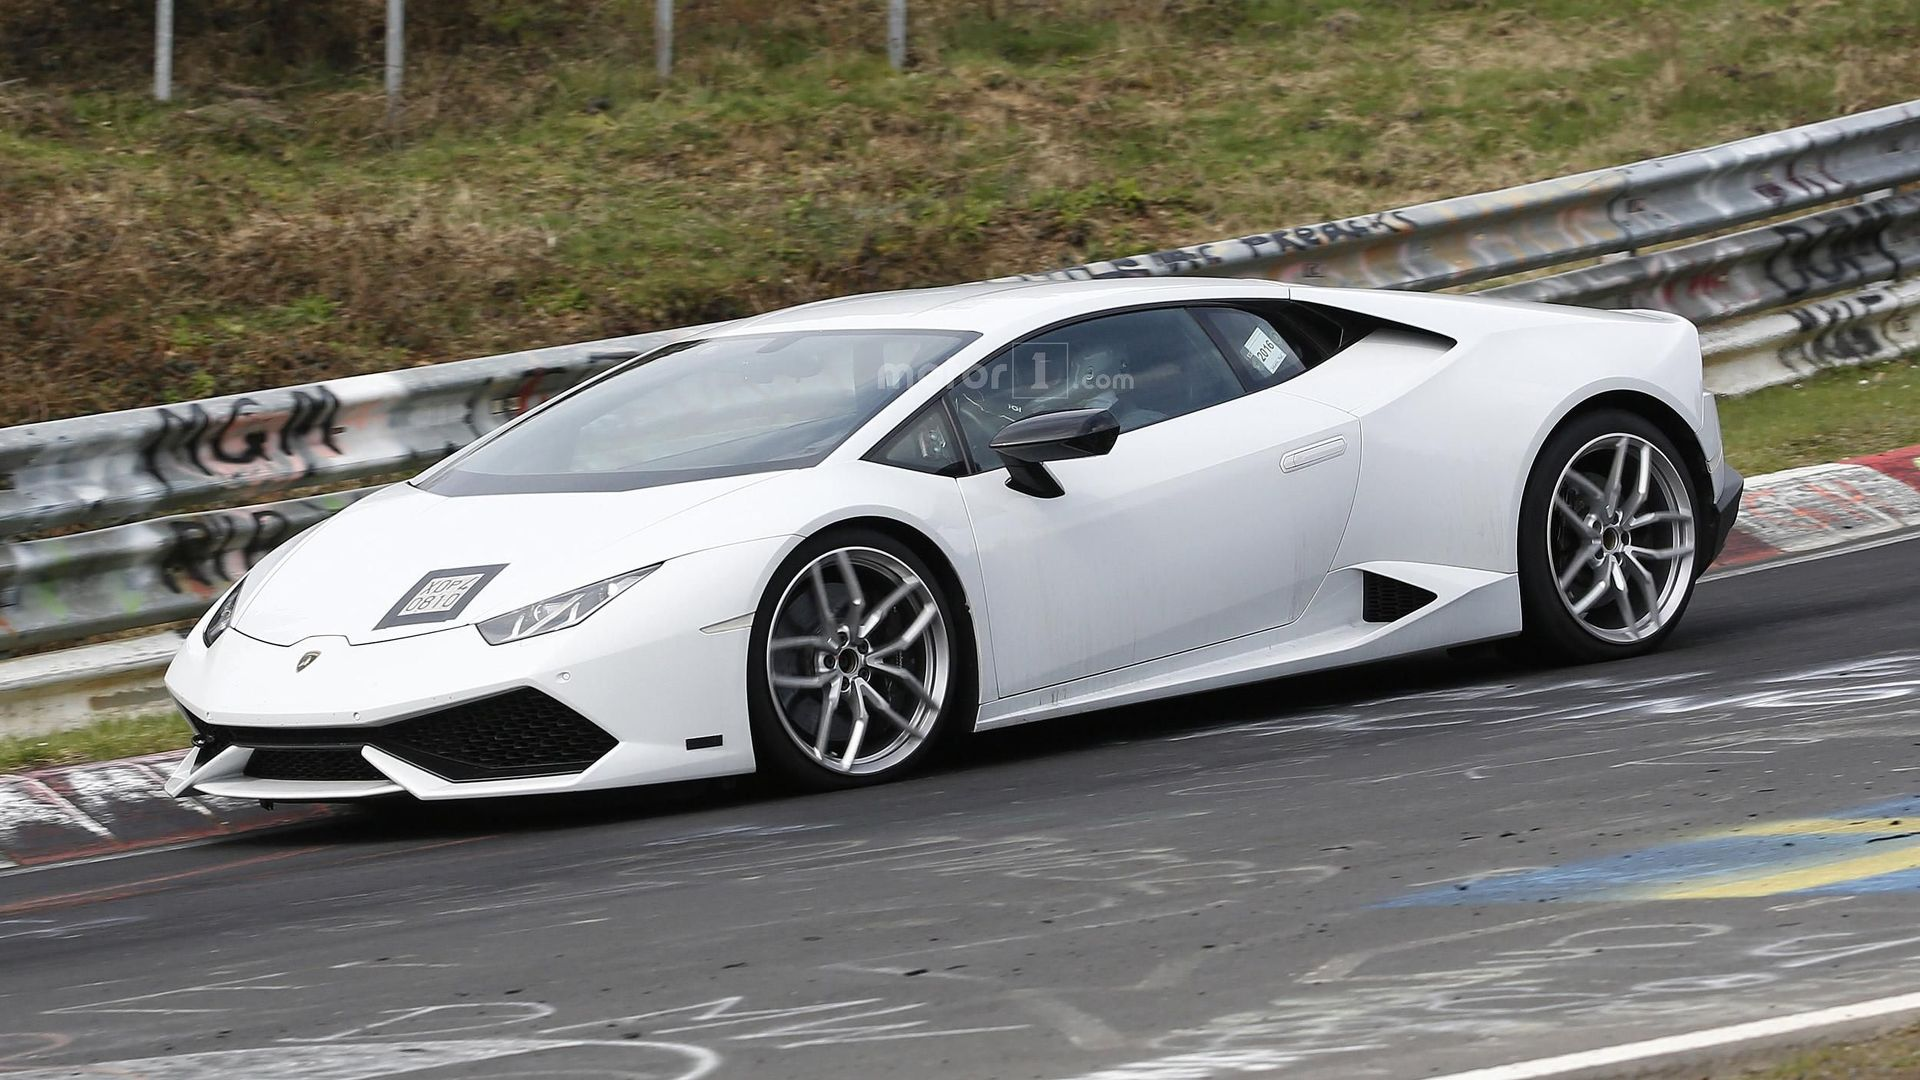 How fast does the fastest lamborghini go